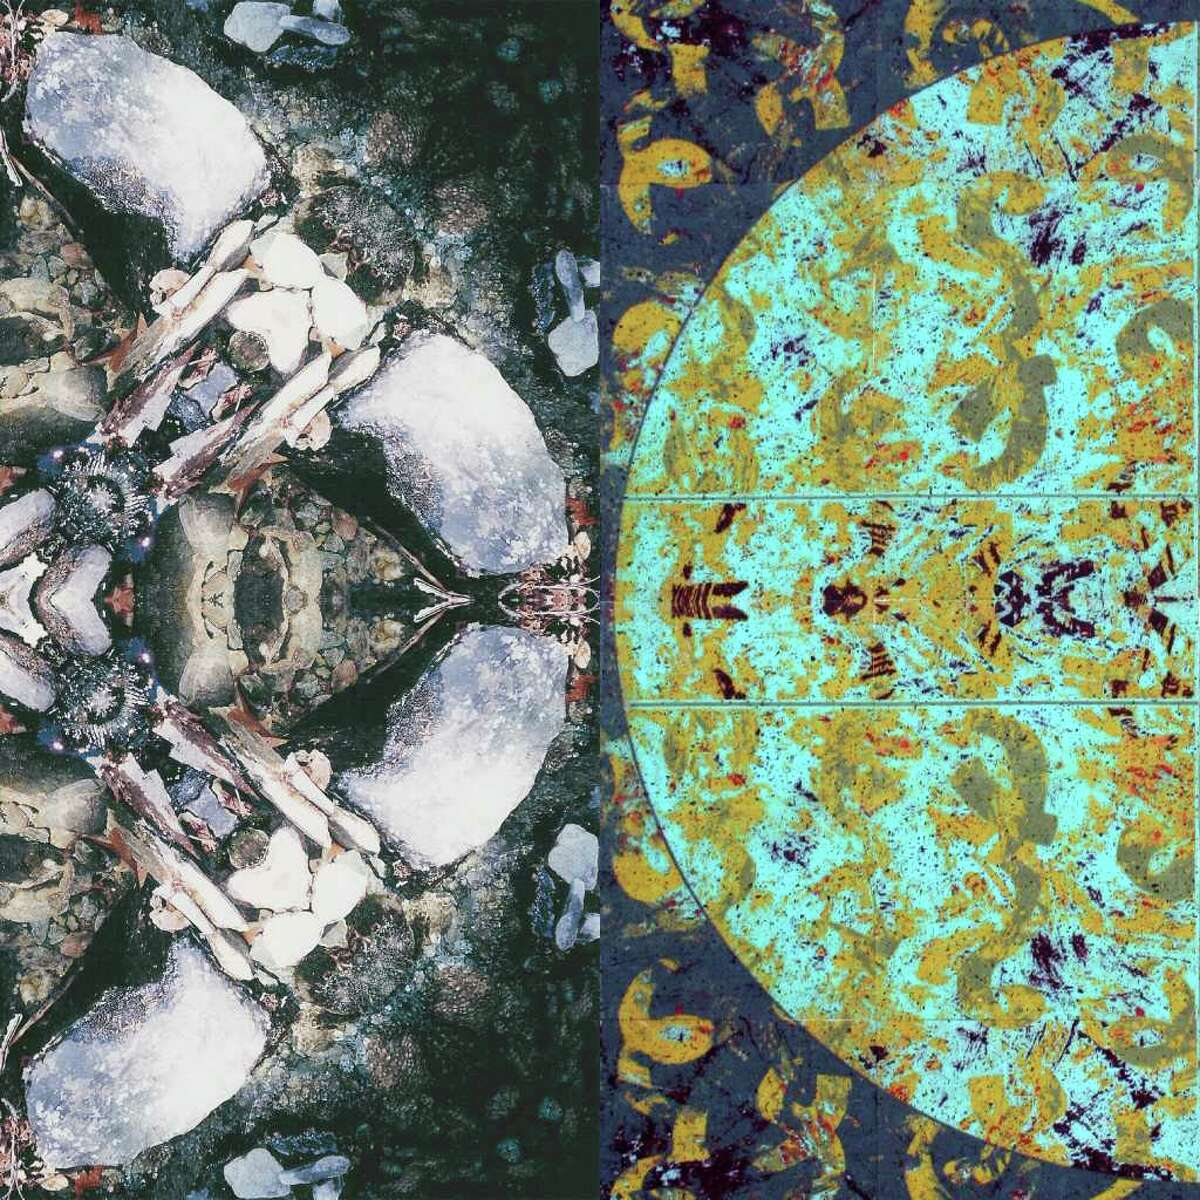 Works by John Arabolos, (left side) and Heidi Lewis Coleman, (right side) are among the pieces in a new exhibit at the Silvermine Arts Center that opens July 31.